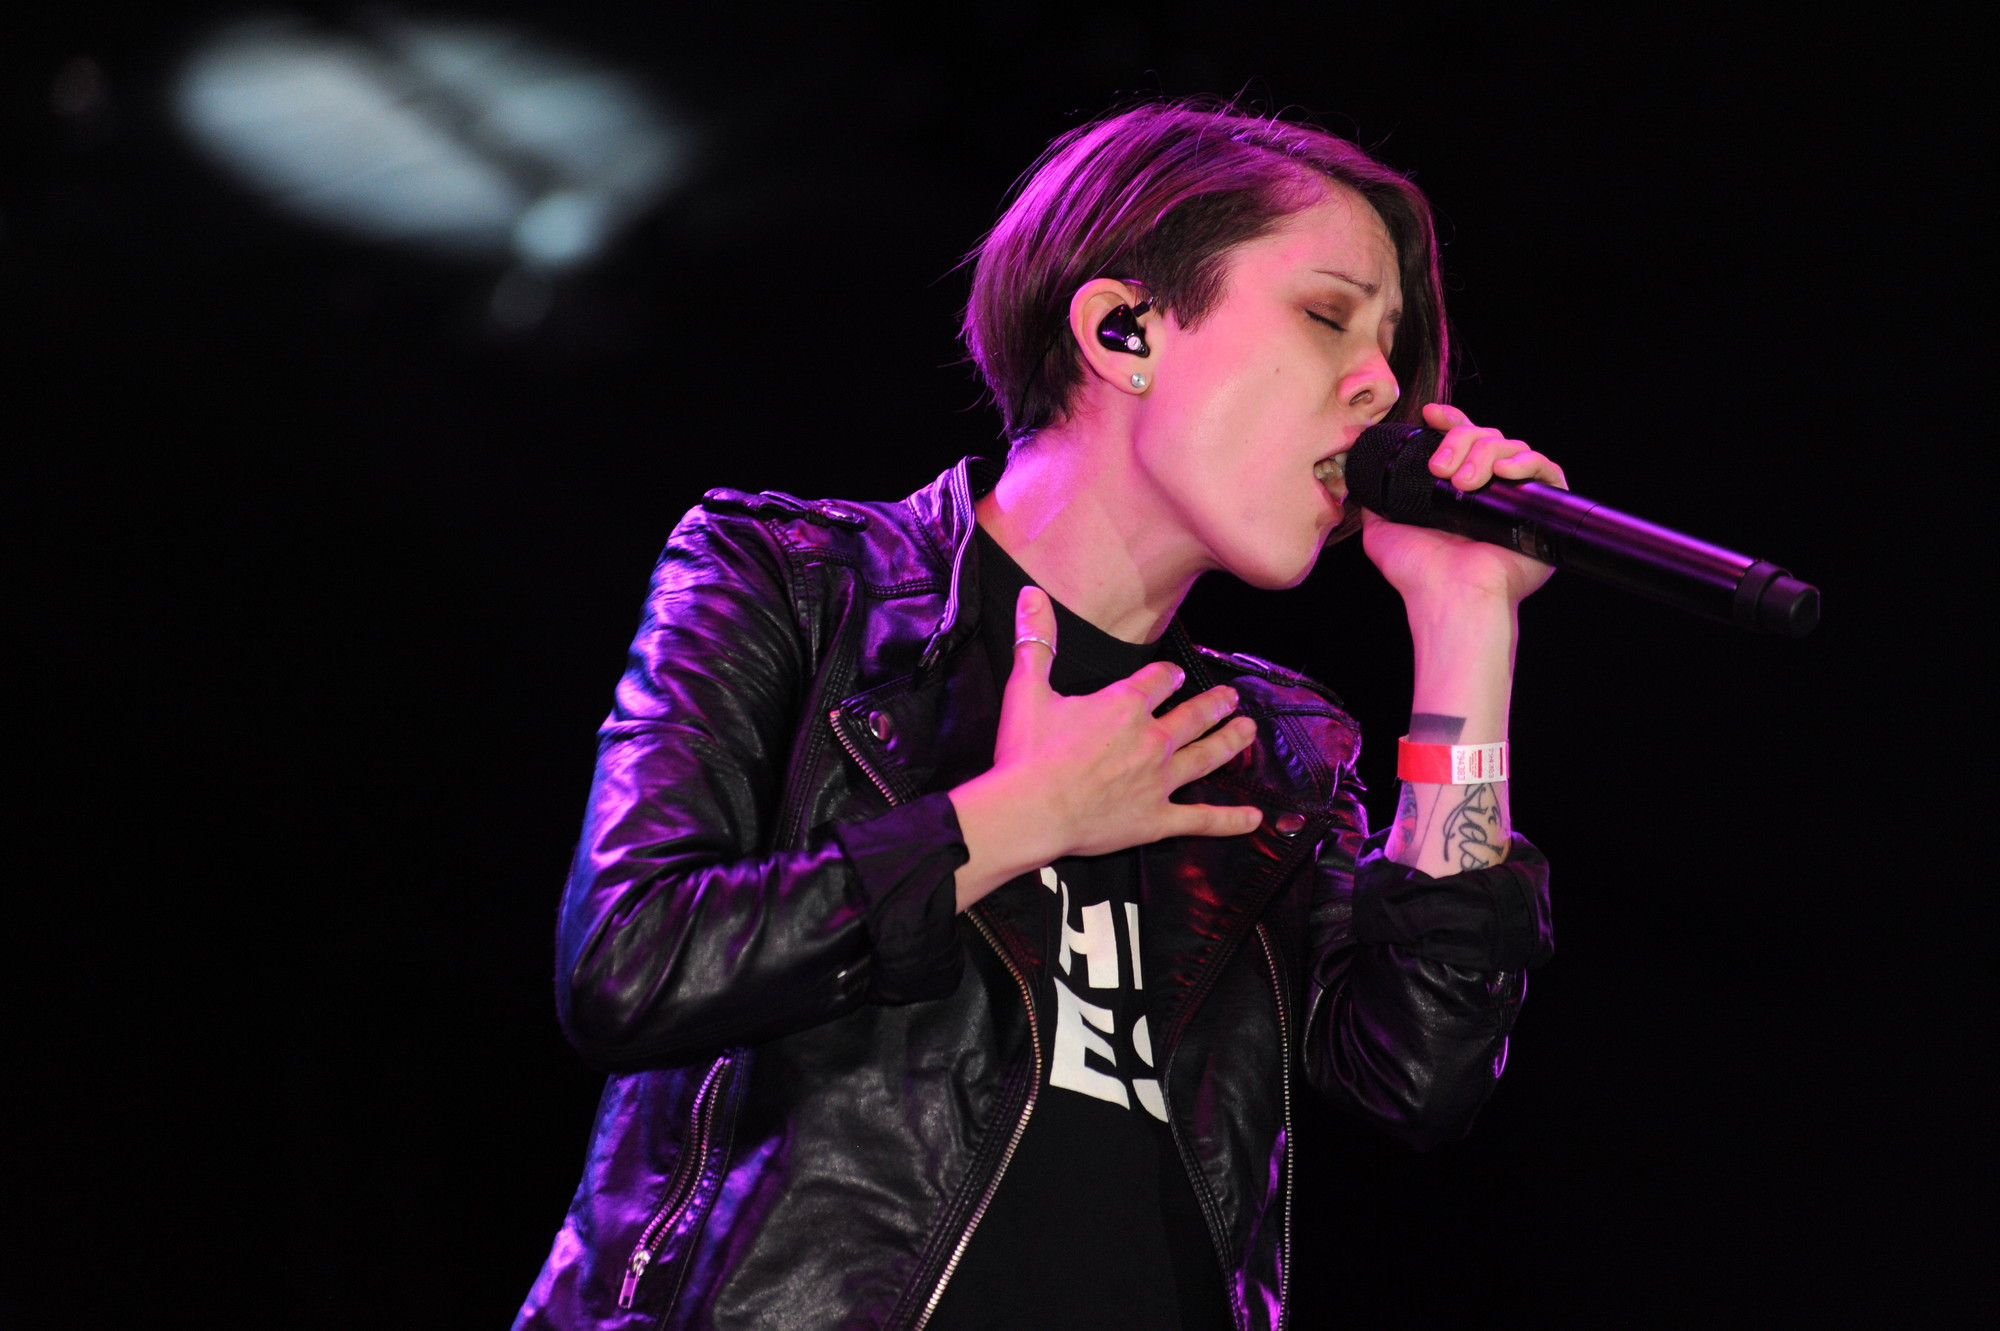 Tegan and Sara, identical twin sisters from Calgary, opened for Christina Perri at the Harry Chapin Lakeside Theatre.